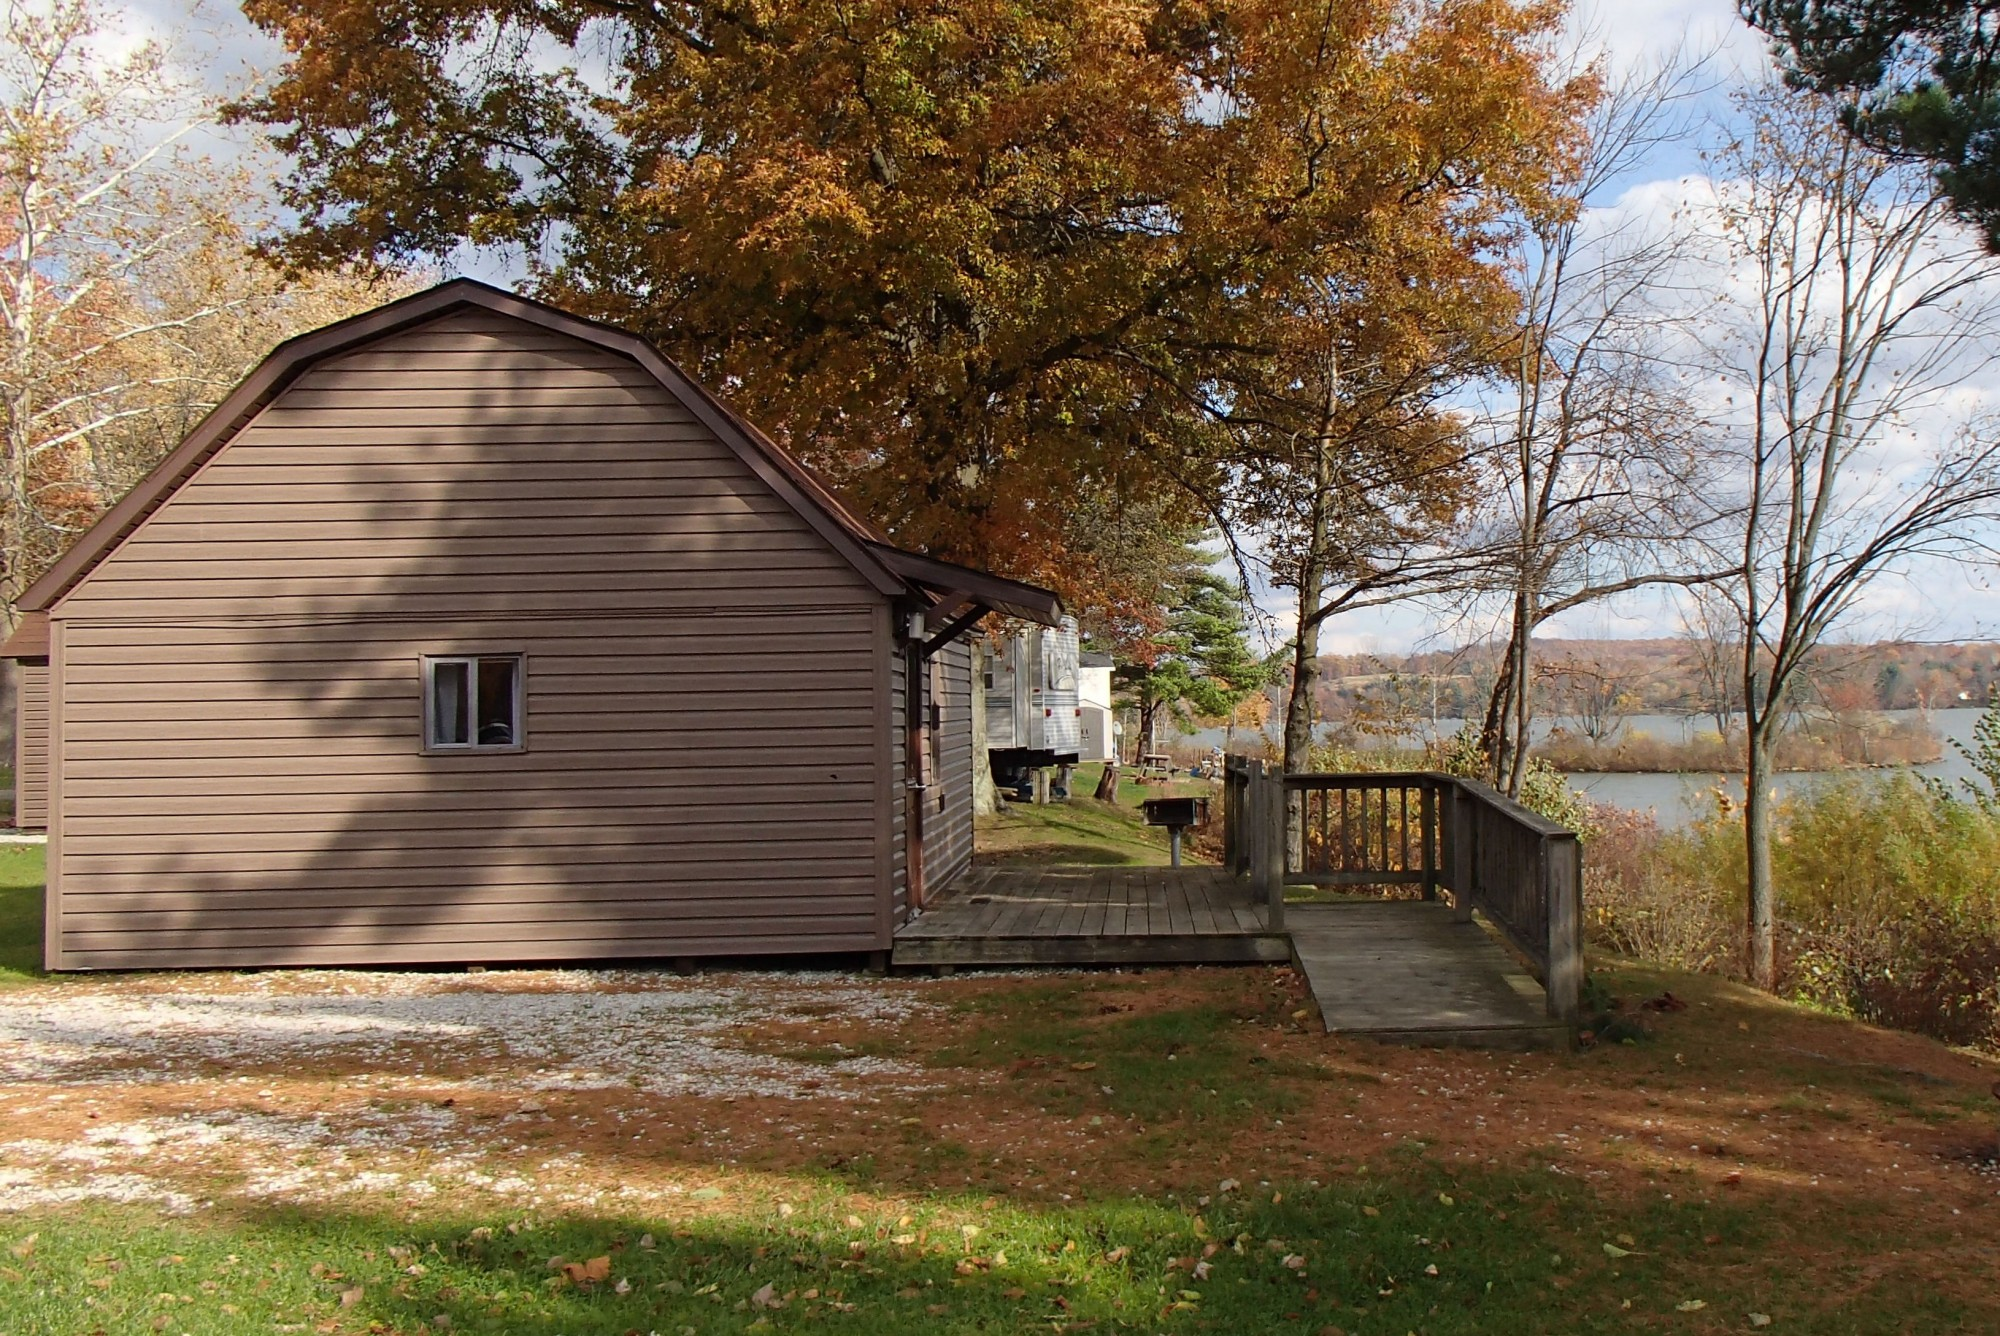 vacation hill cabins cabin lake park img ohio accommodations rates pleasant rentals